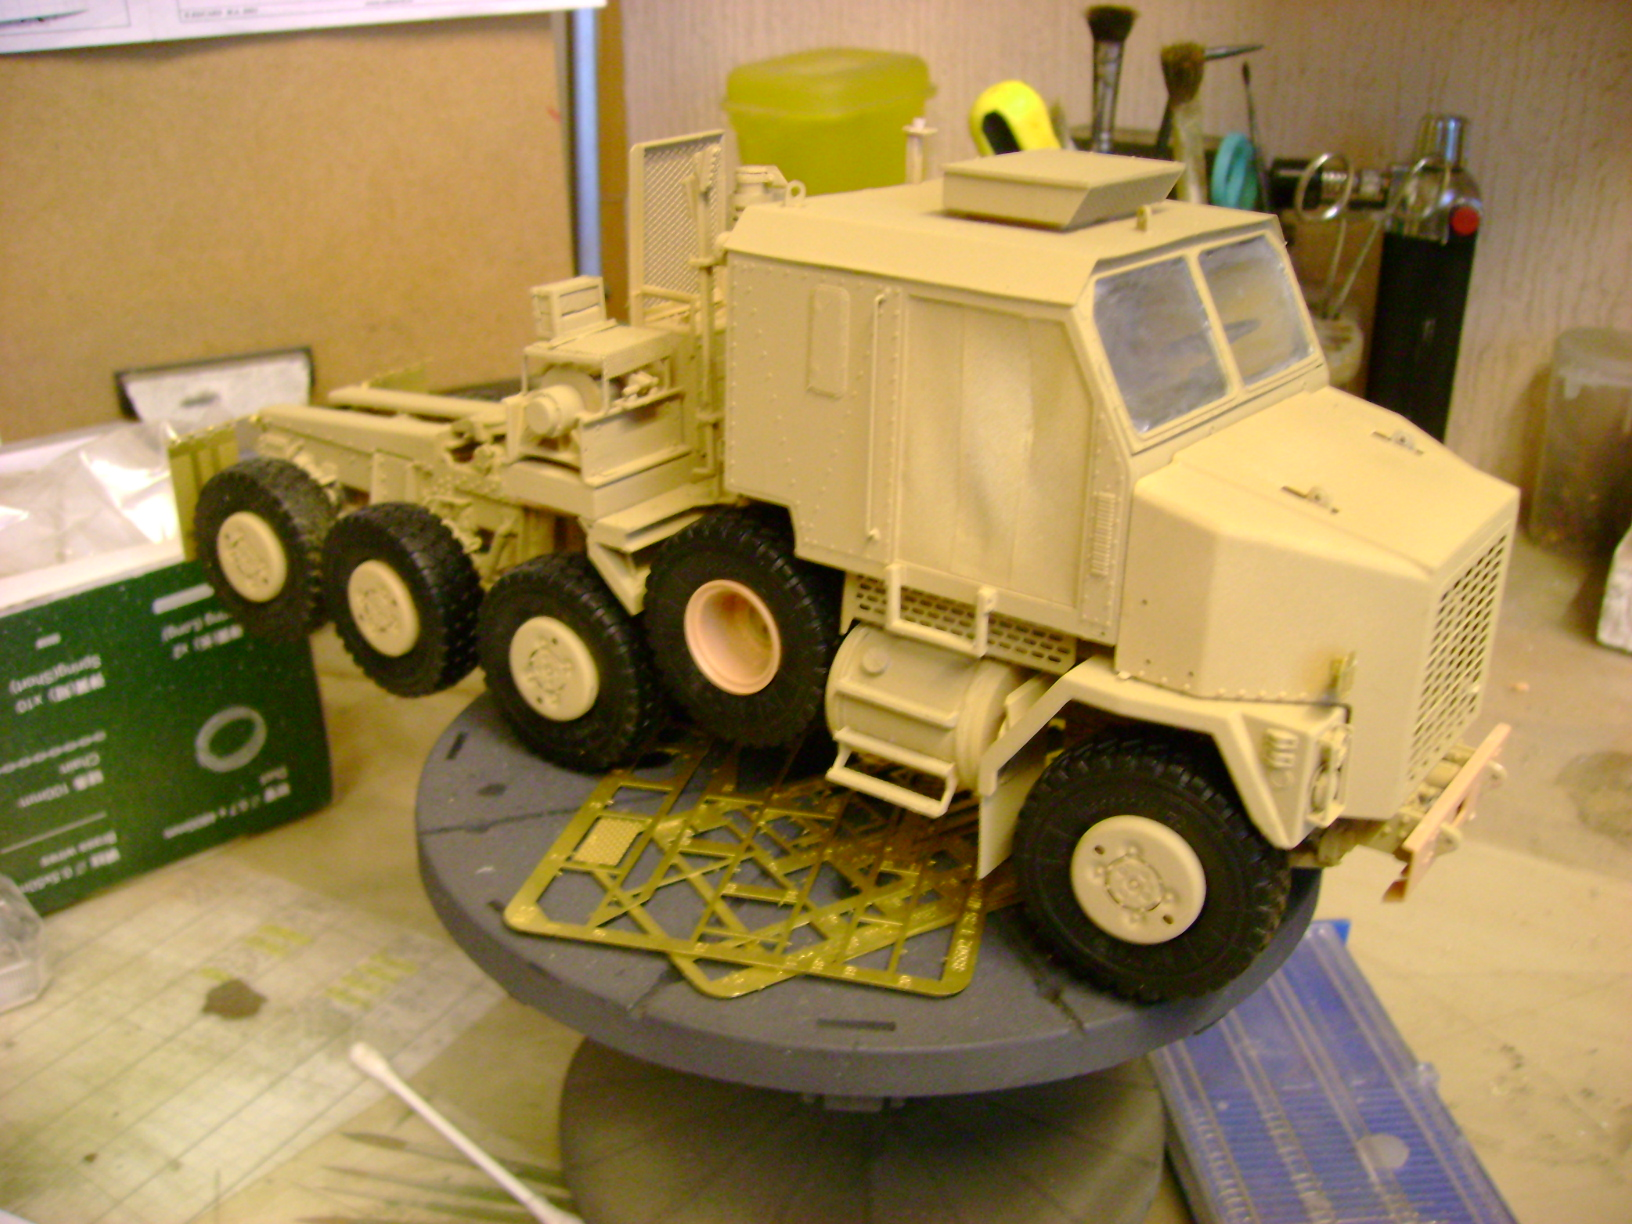 M1070 Truck Tractor & M1000 Semi-Trailer By T-bird!!!!! 1/35 Hobby Boss.Up du01/02.... - Page 4 116bs